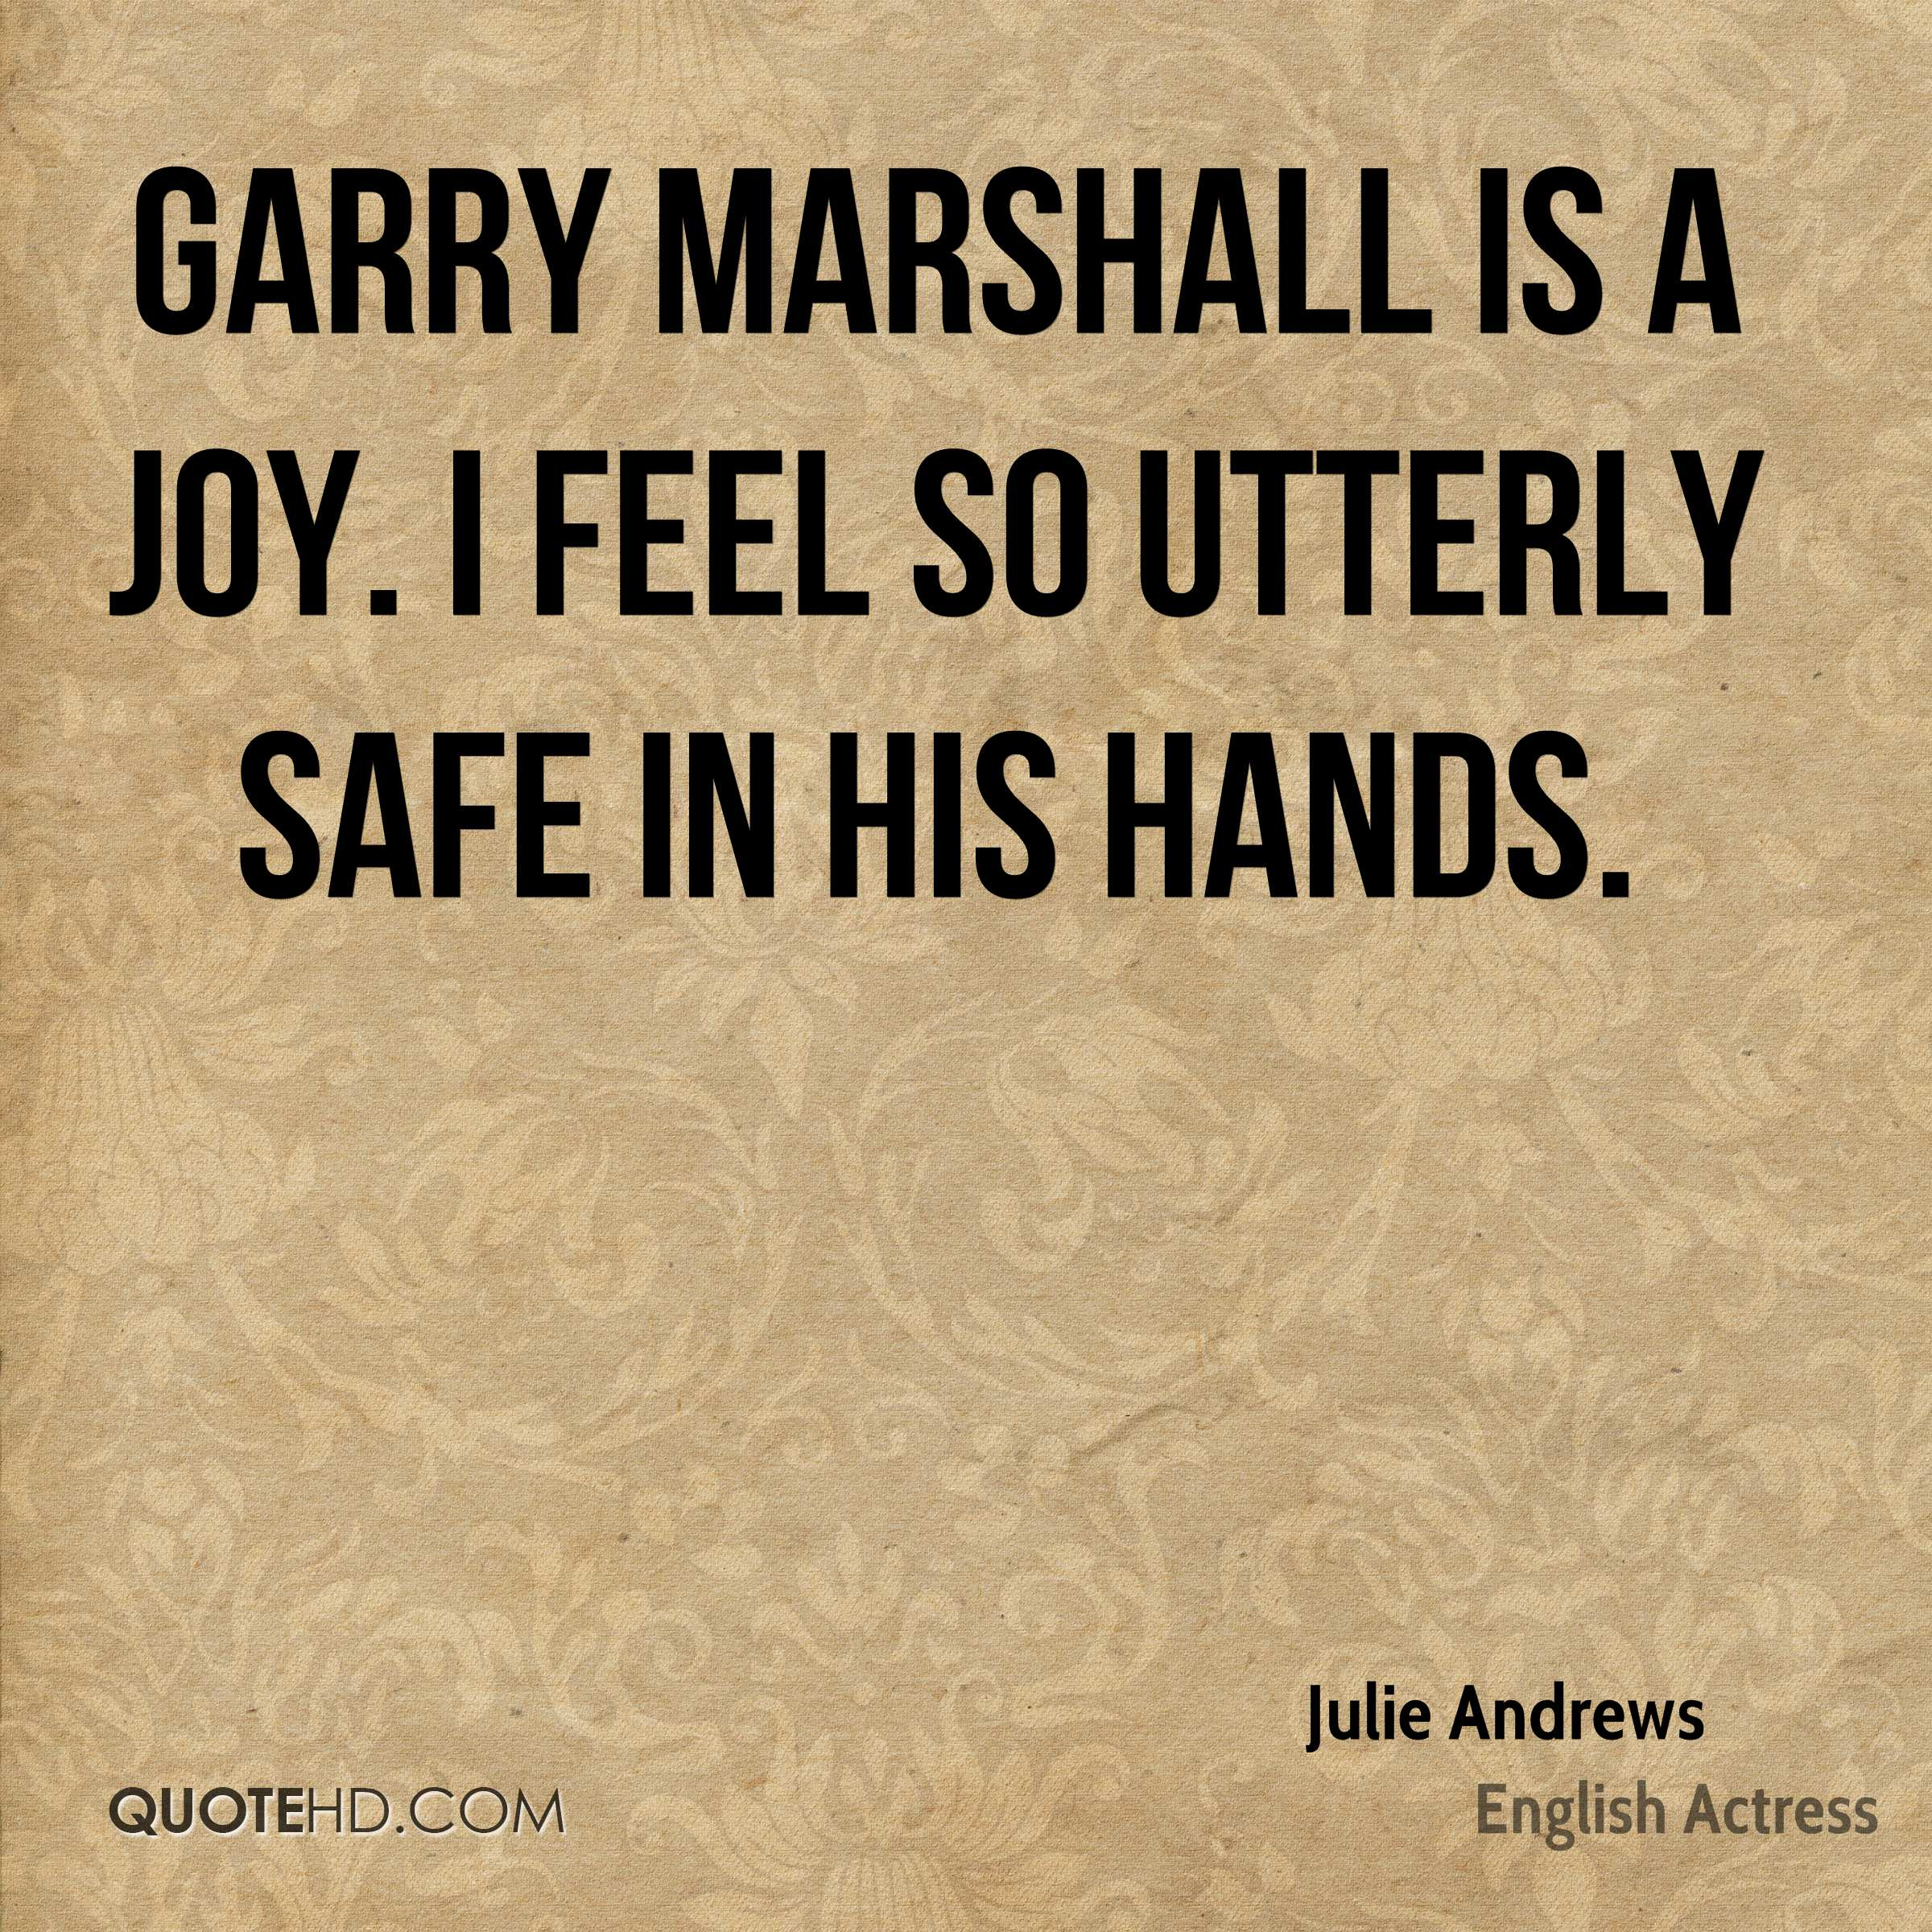 Garry Marshall is a joy. I feel so utterly safe in his hands.